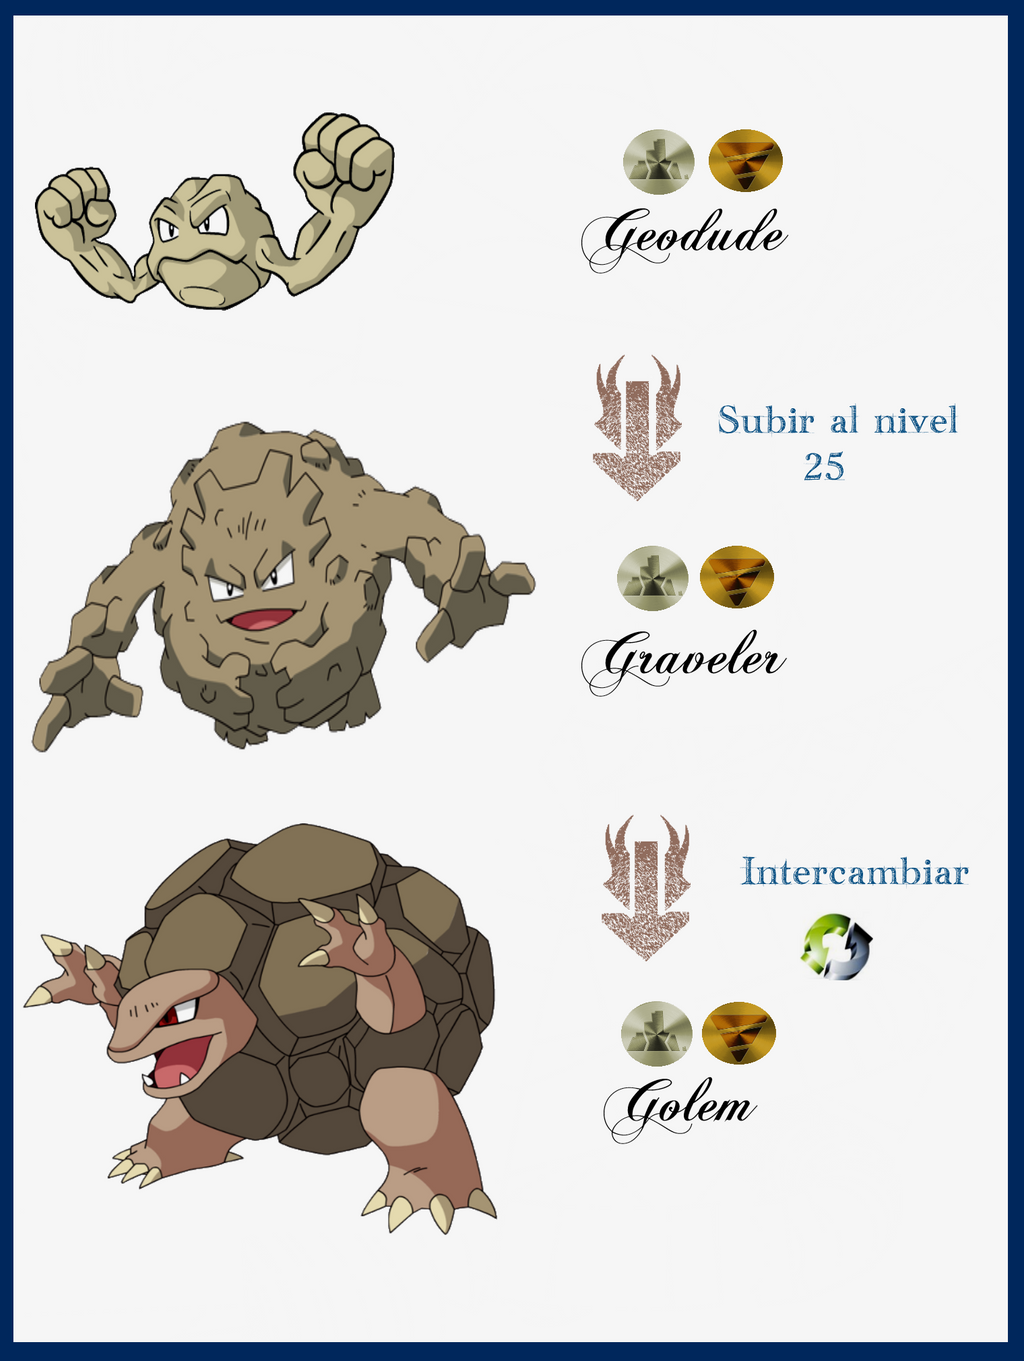 031 Geodude Evoluciones by Maxconnery on DeviantArt